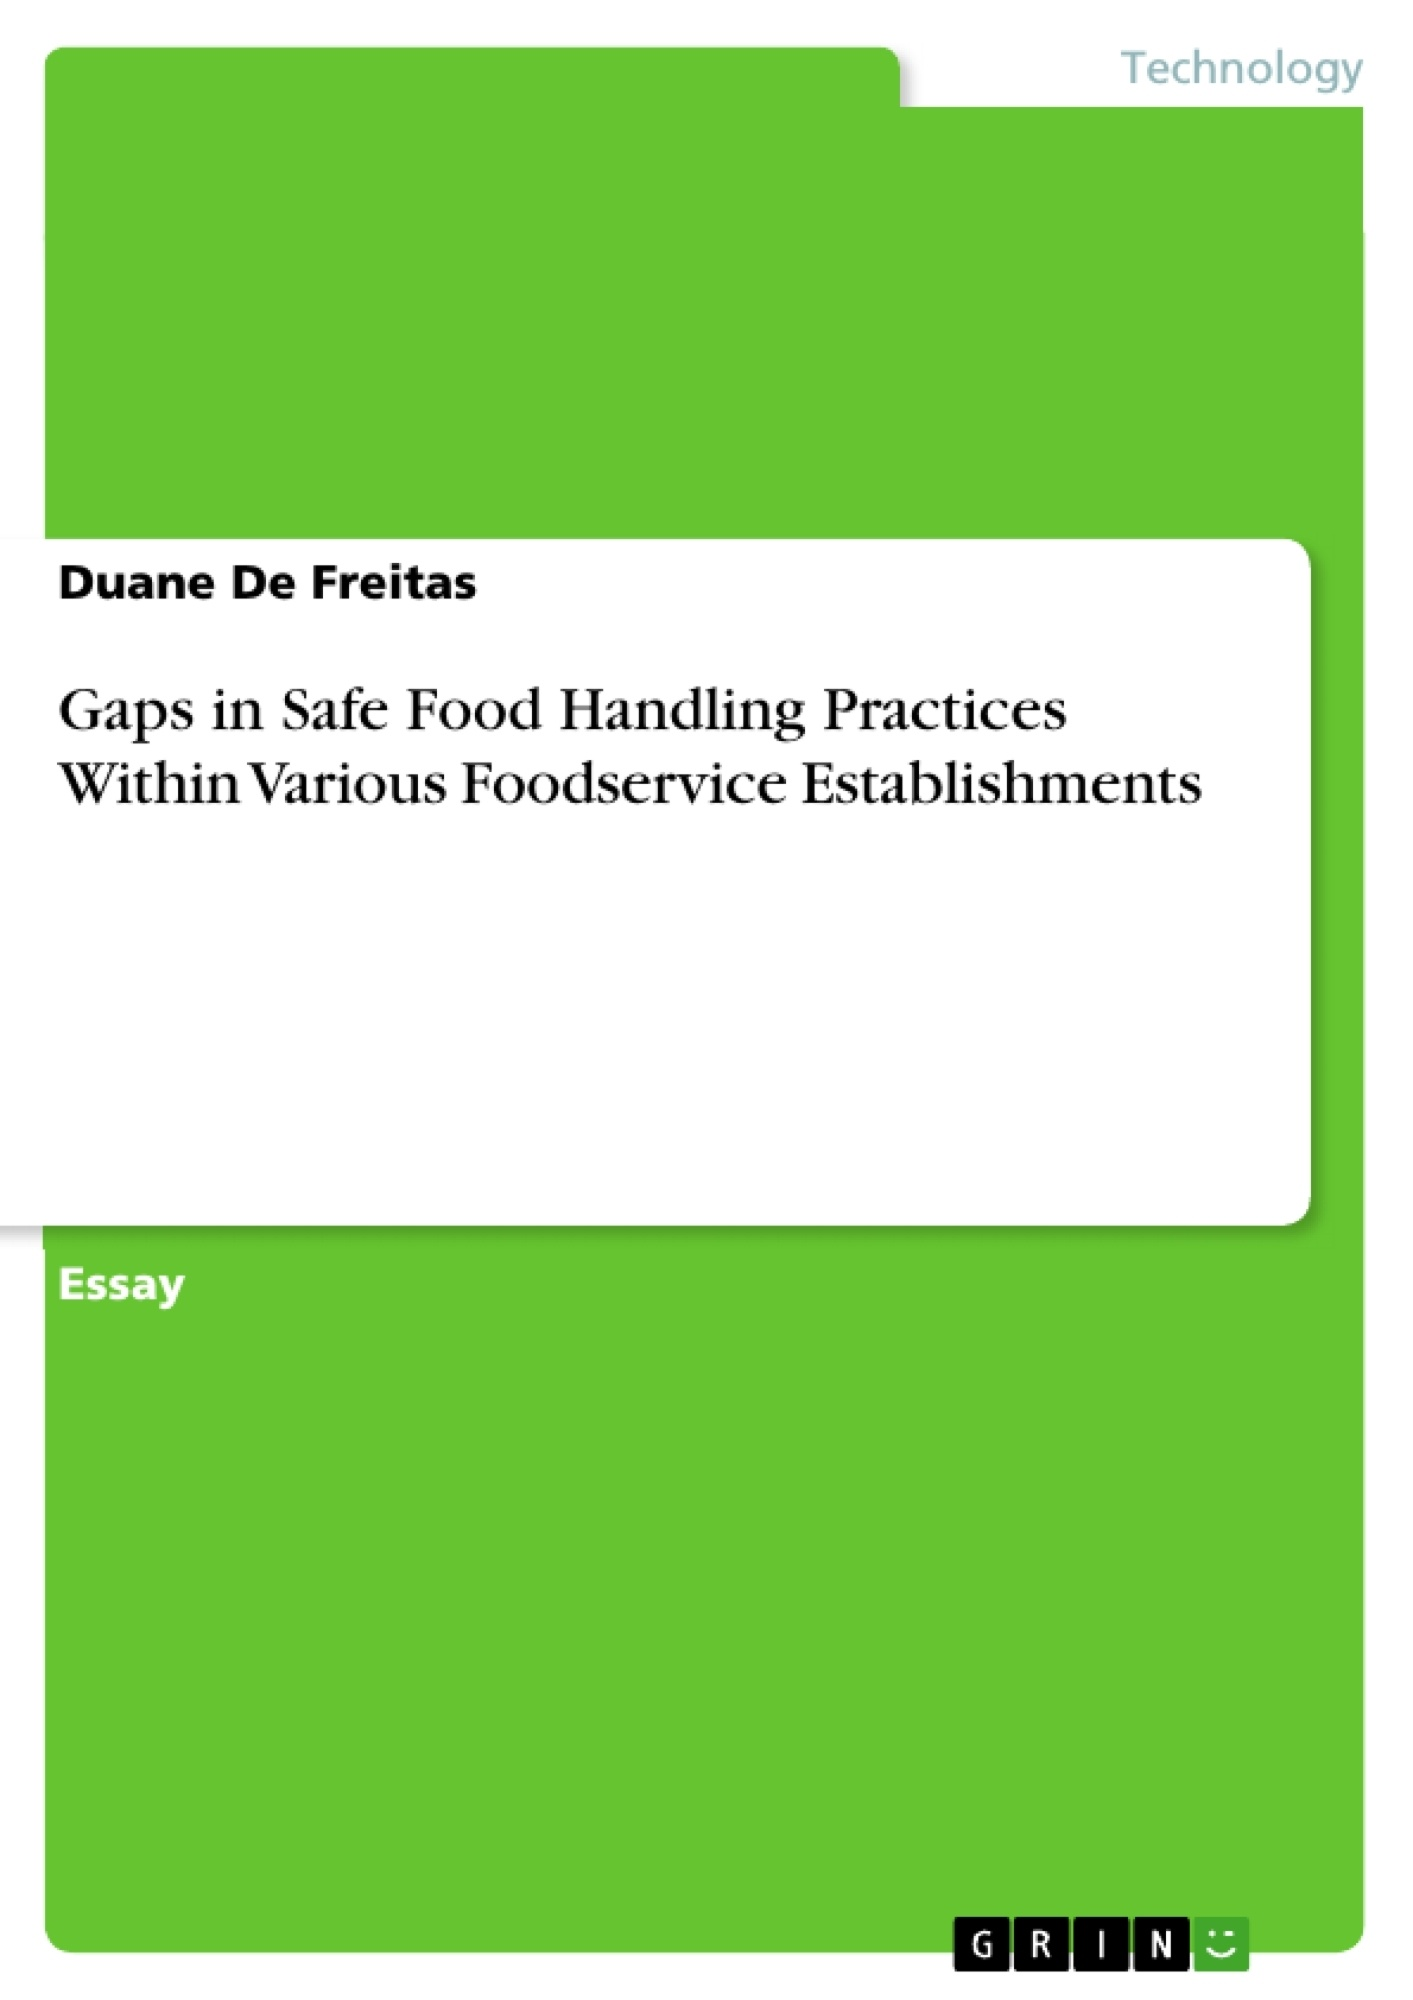 Title: Gaps in Safe Food Handling Practices Within Various Foodservice Establishments